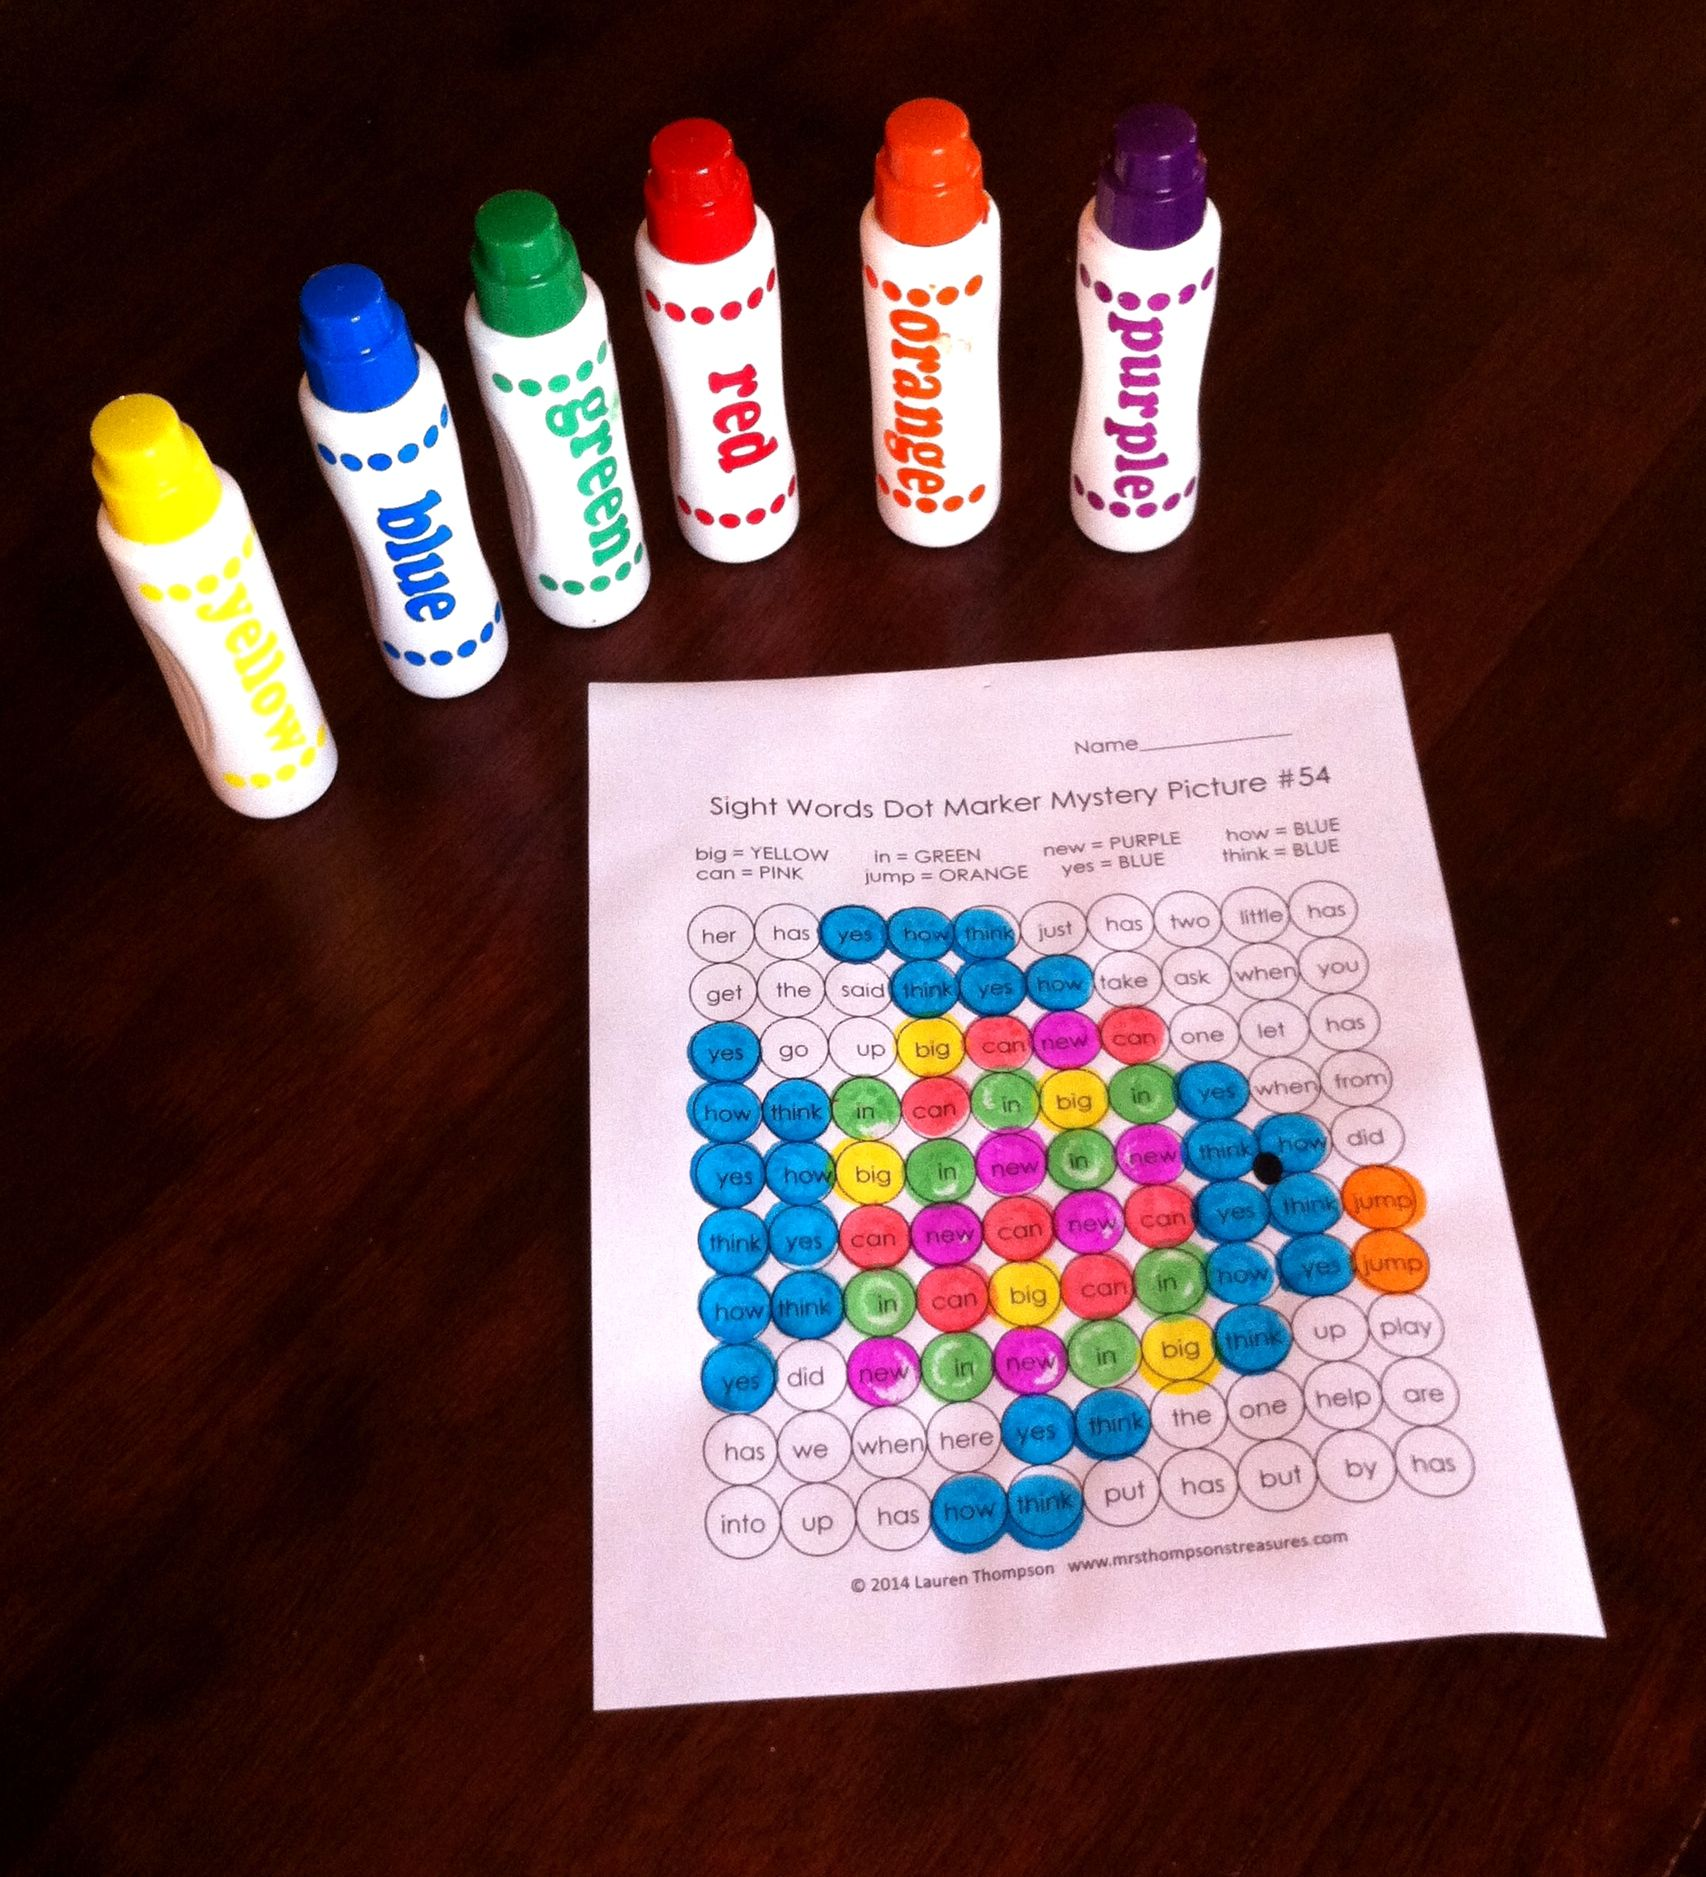 Sight Words Dot Marker Mystery Pictures Use Do A Dot Markers Or Bingo Daubers To Color In Sight Wor Sight Words Kindergarten Sight Words Teaching Sight Words Can you use bingo markers to write on